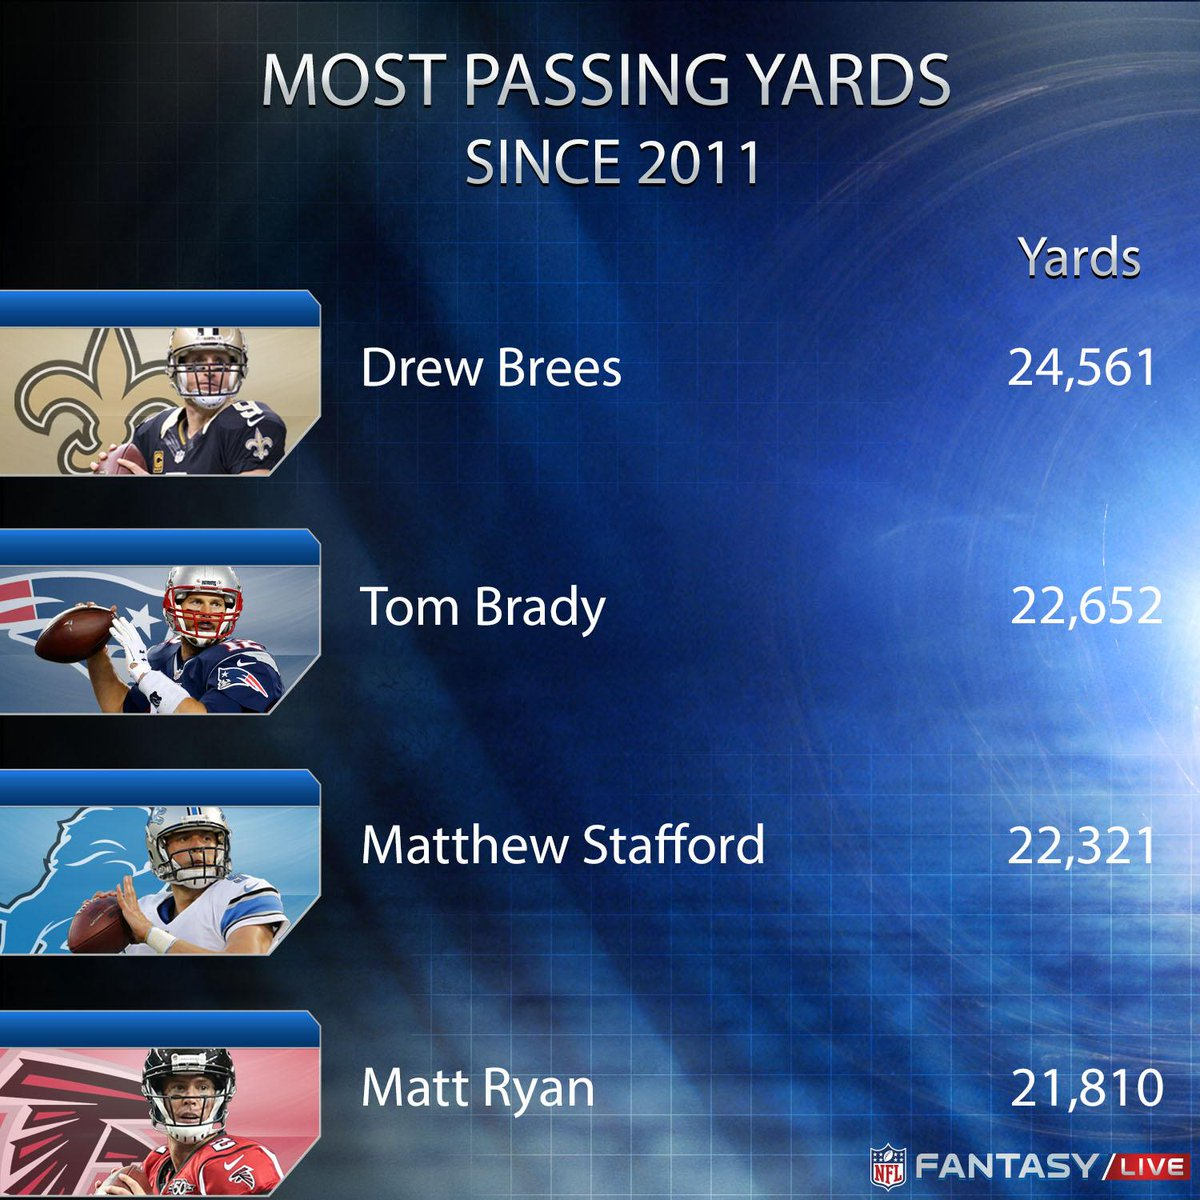 Most Passing Yards Since 2011  1. Brees 2. Brady 3. Stafford  NFL Fantasy LIVE is on @nflnetwork next. #DETvsNO #MNF https://t.co/XAwNqR9pD2